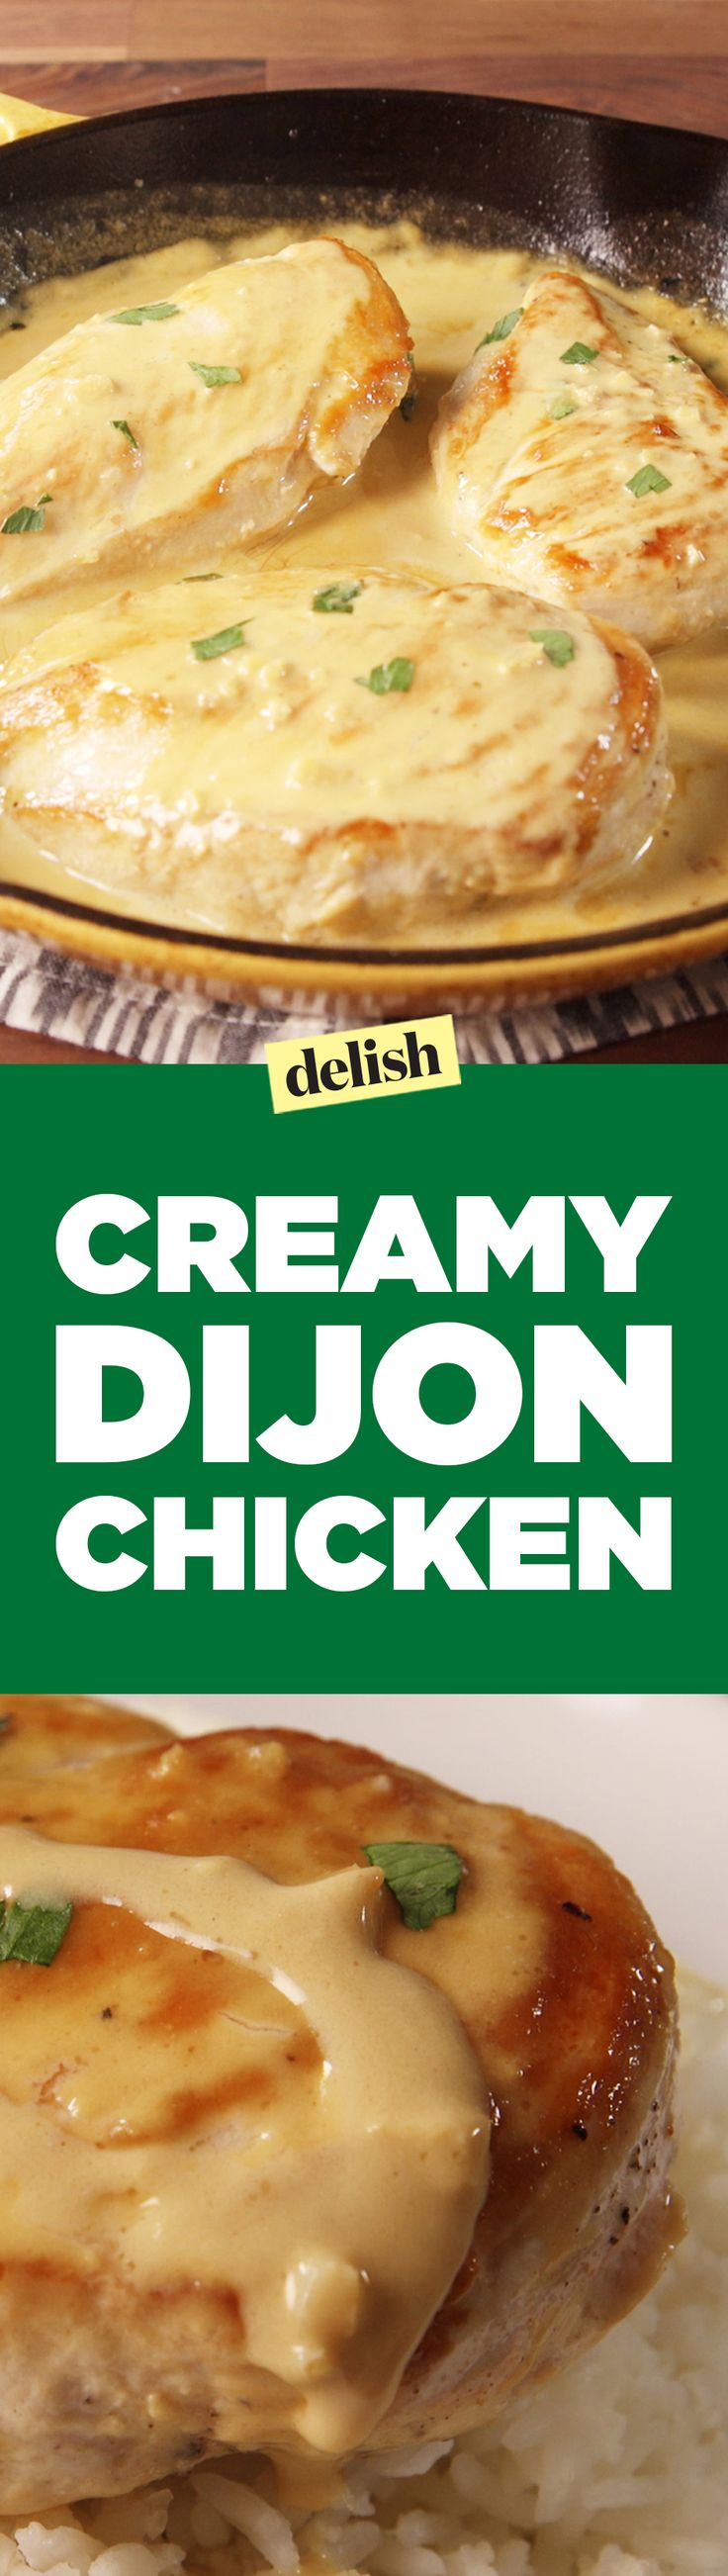 This creamy dijon chicken is covered in what we're calling a classier dijonaise. Get the recipe on Delish.com.